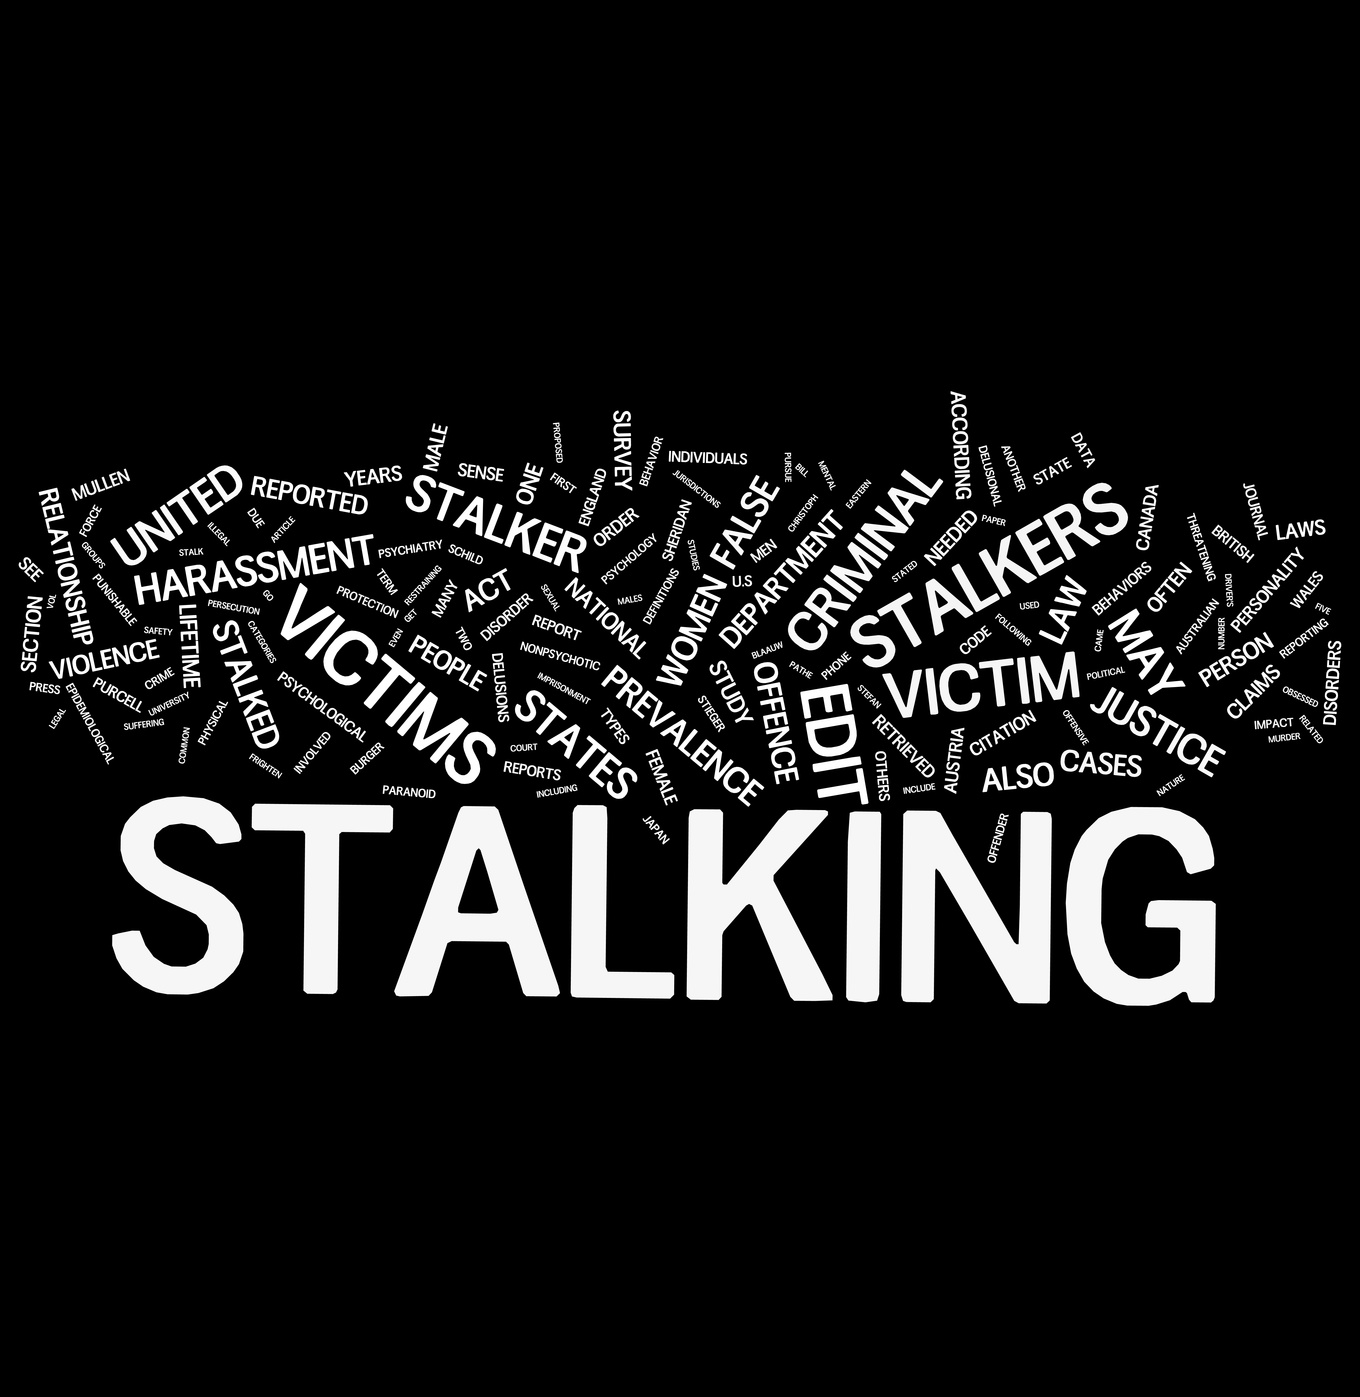 Stalking Quotes Seattle Police Detective Arrested For Alleged Cyberstalking